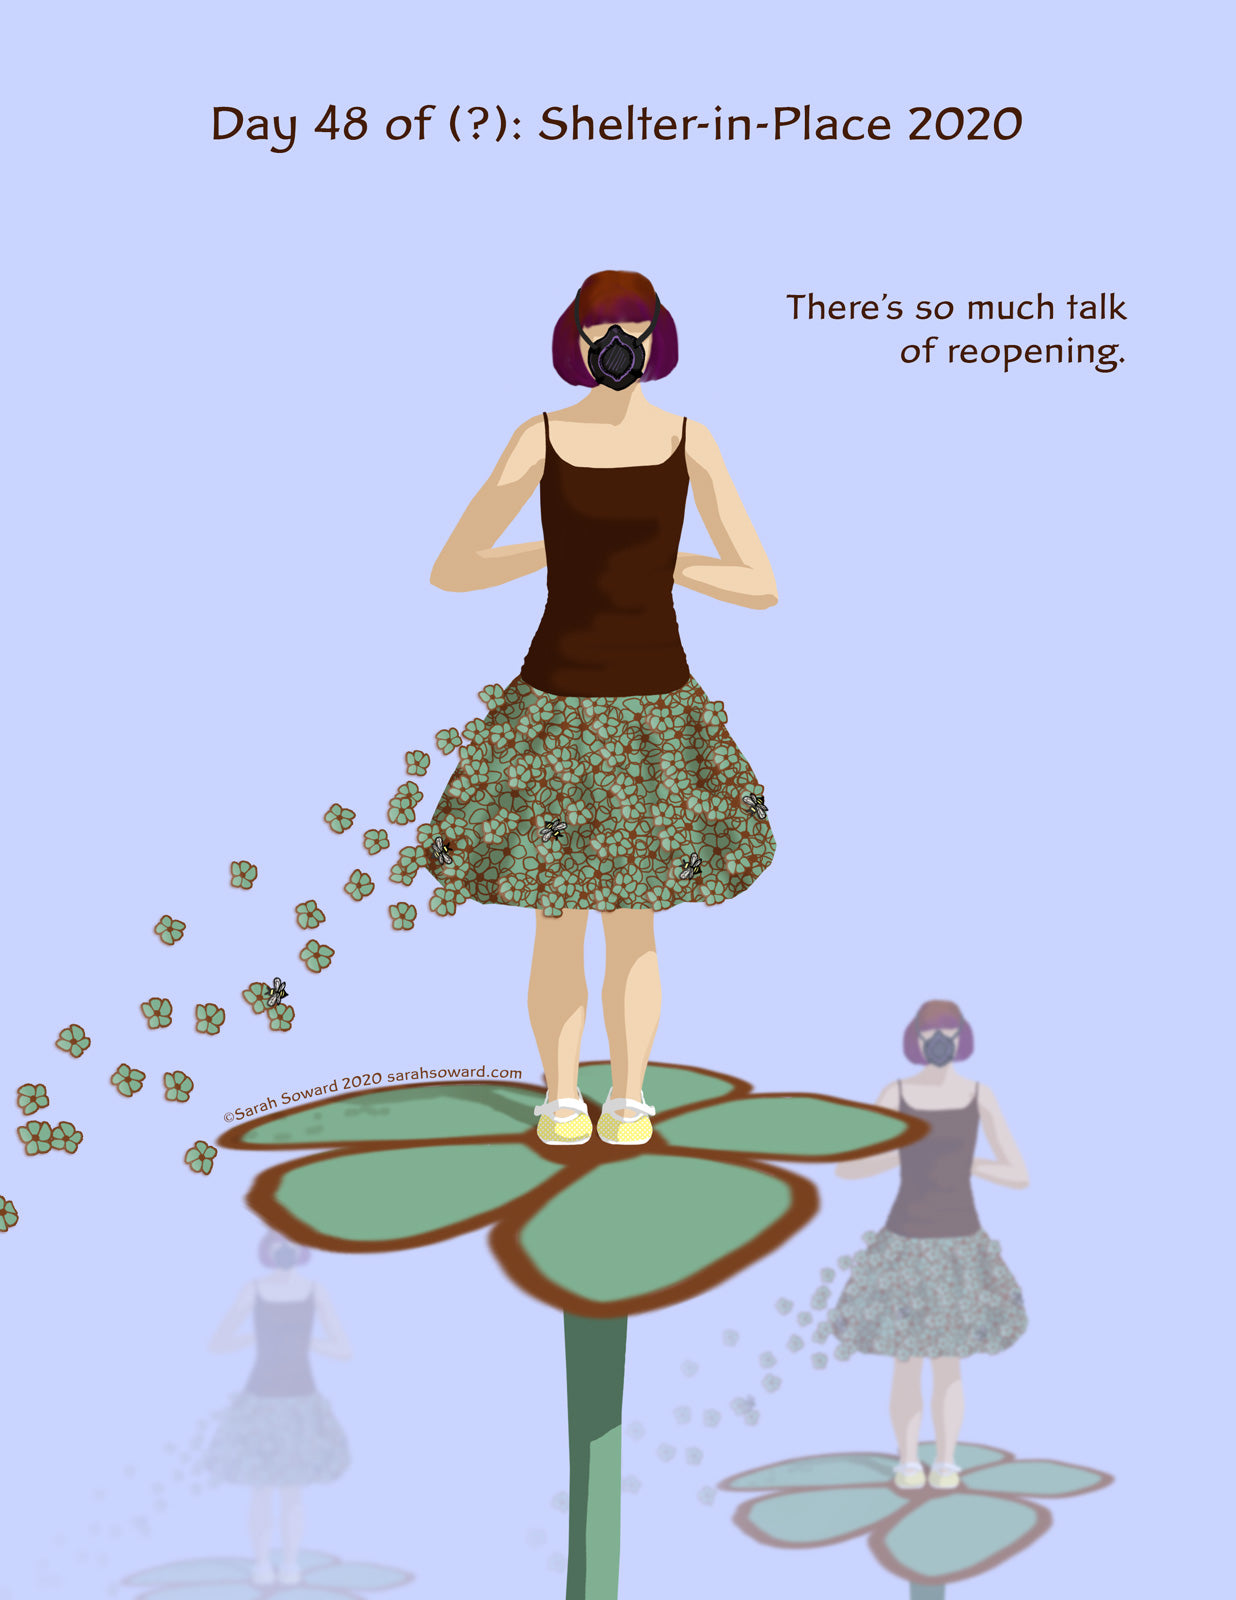 A woman stands on a green flower. Her skirt is the same color, made up of the same flowers. The flowers on her skirt are multiplying and flying away. The are more of her on the flower fading into the distance. The text on the image reads, There's so much talk of reopening.